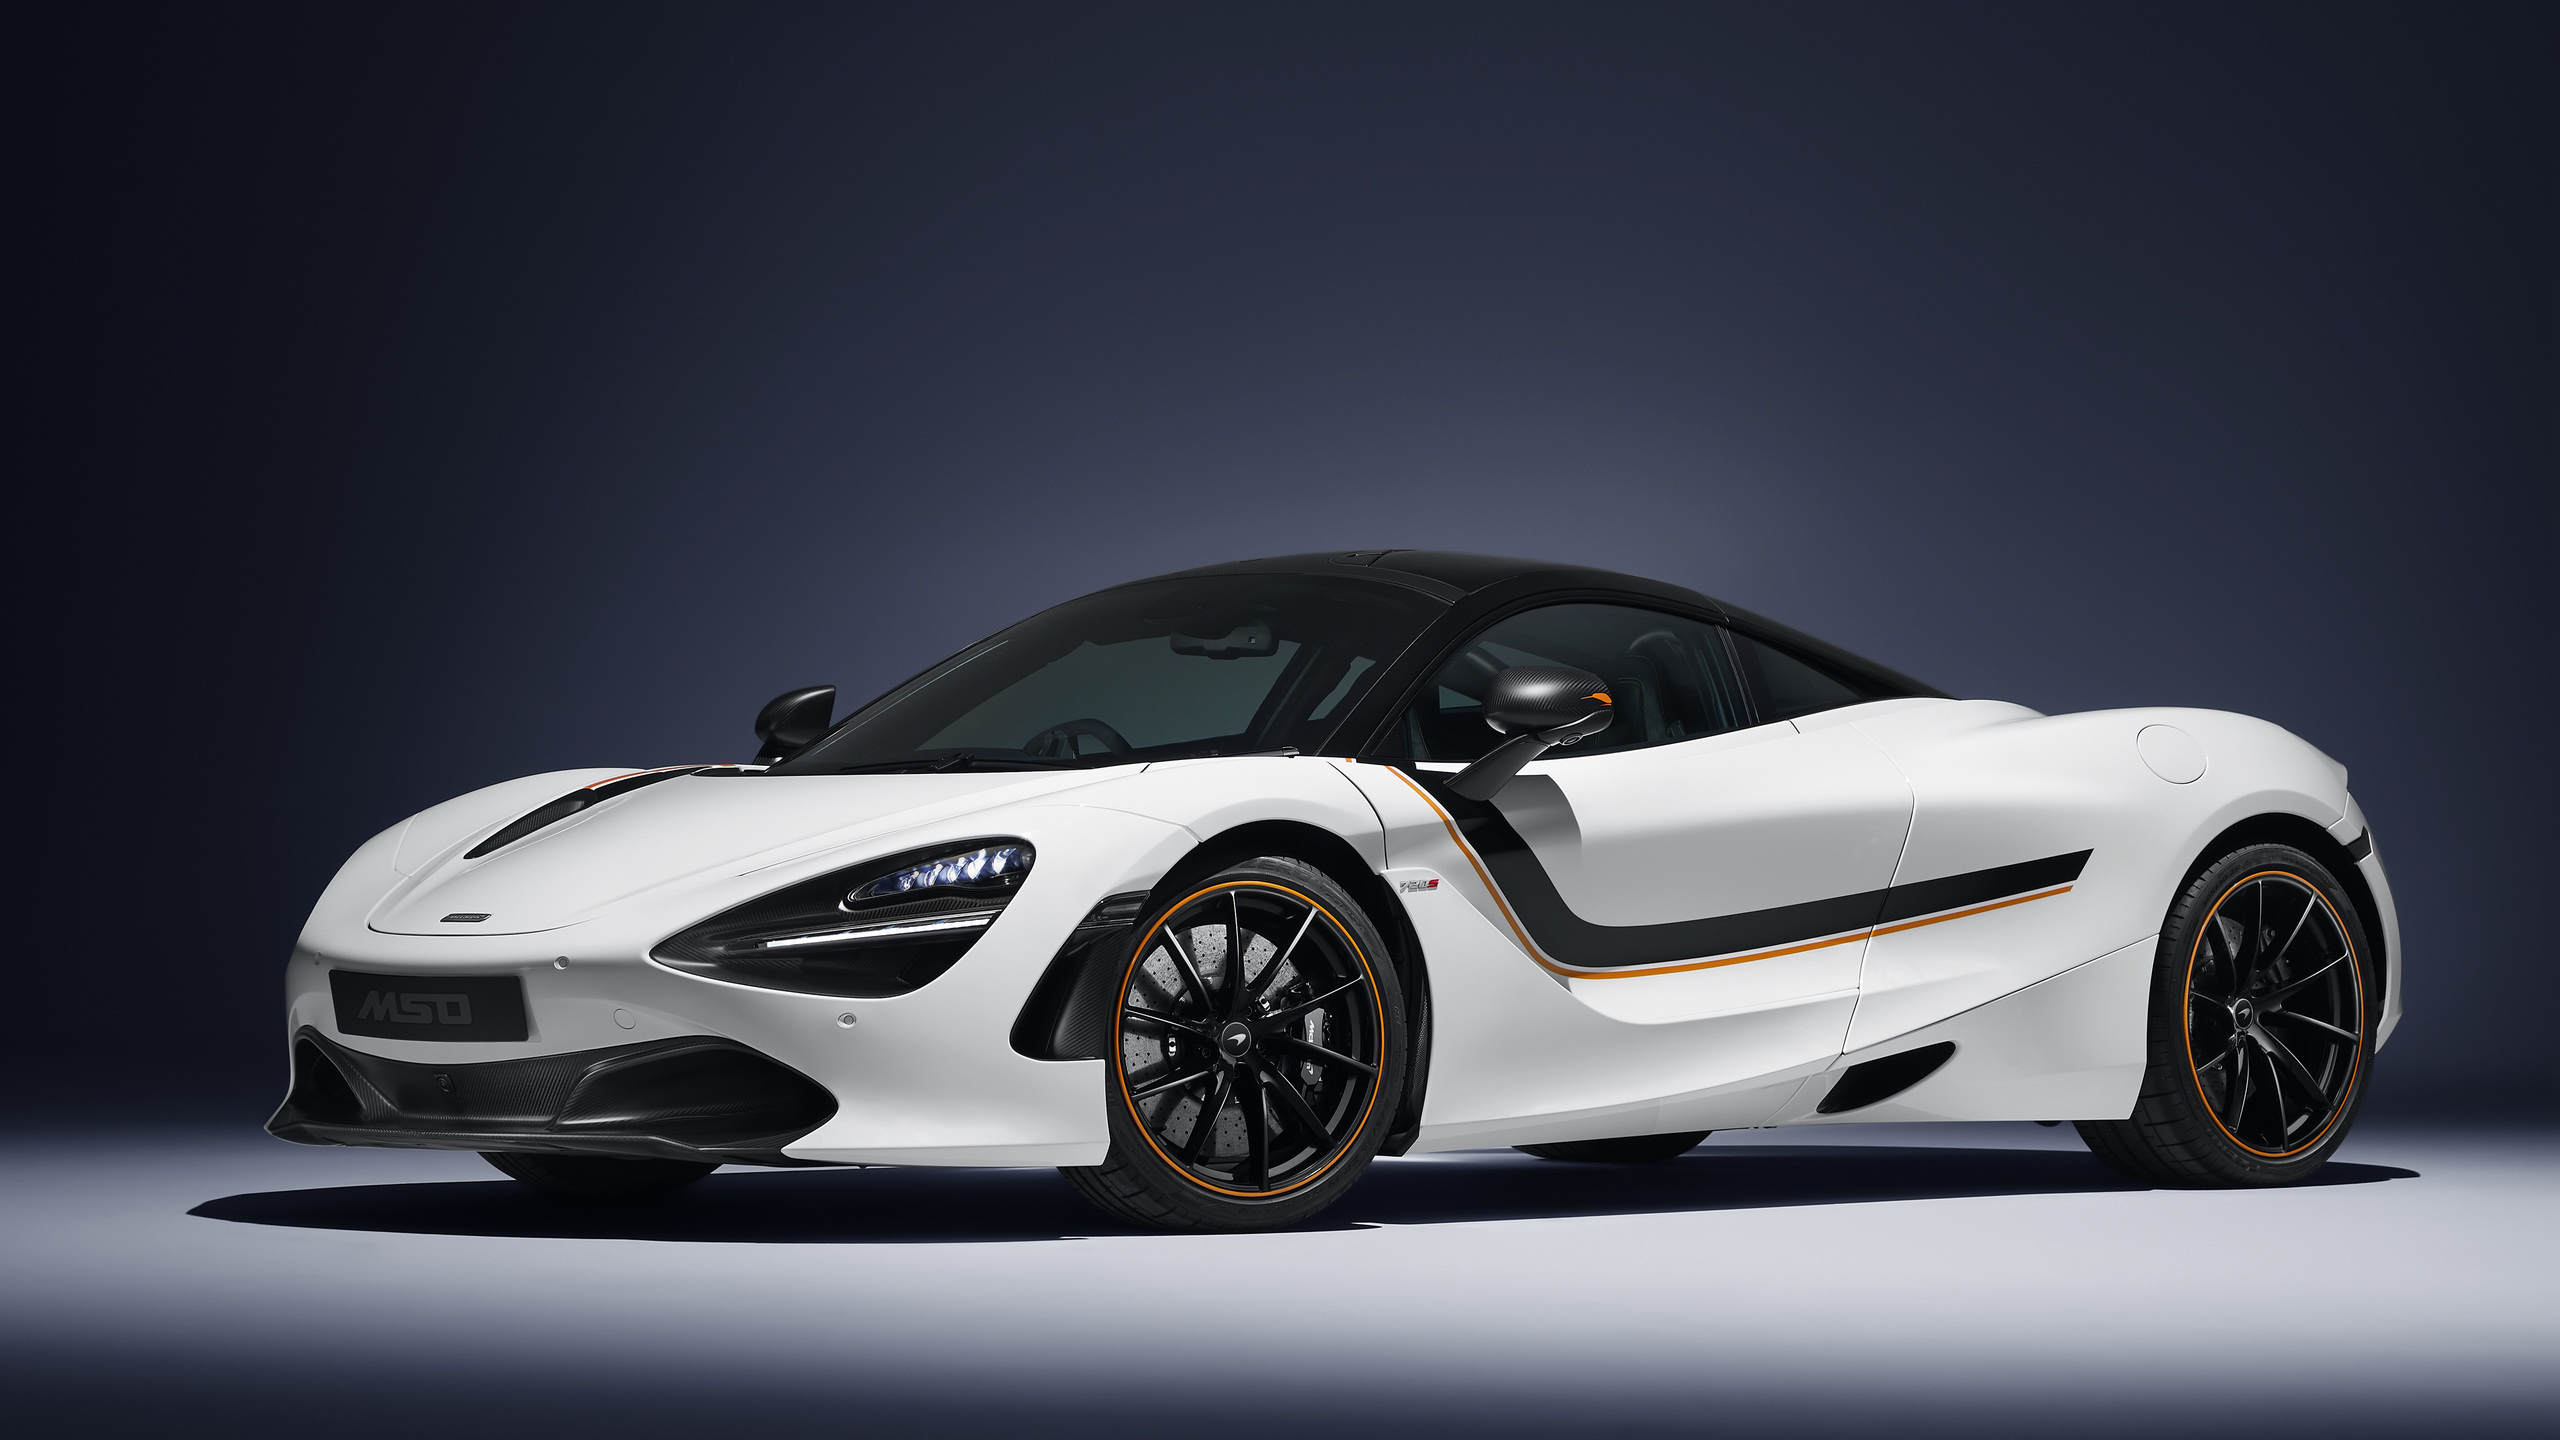 2560x1440 Mclaren Mso 720s Track Theme 2018 4k 1440p Resolution Hd 4k Wallpapers Images Backgrounds Photos And Pictures